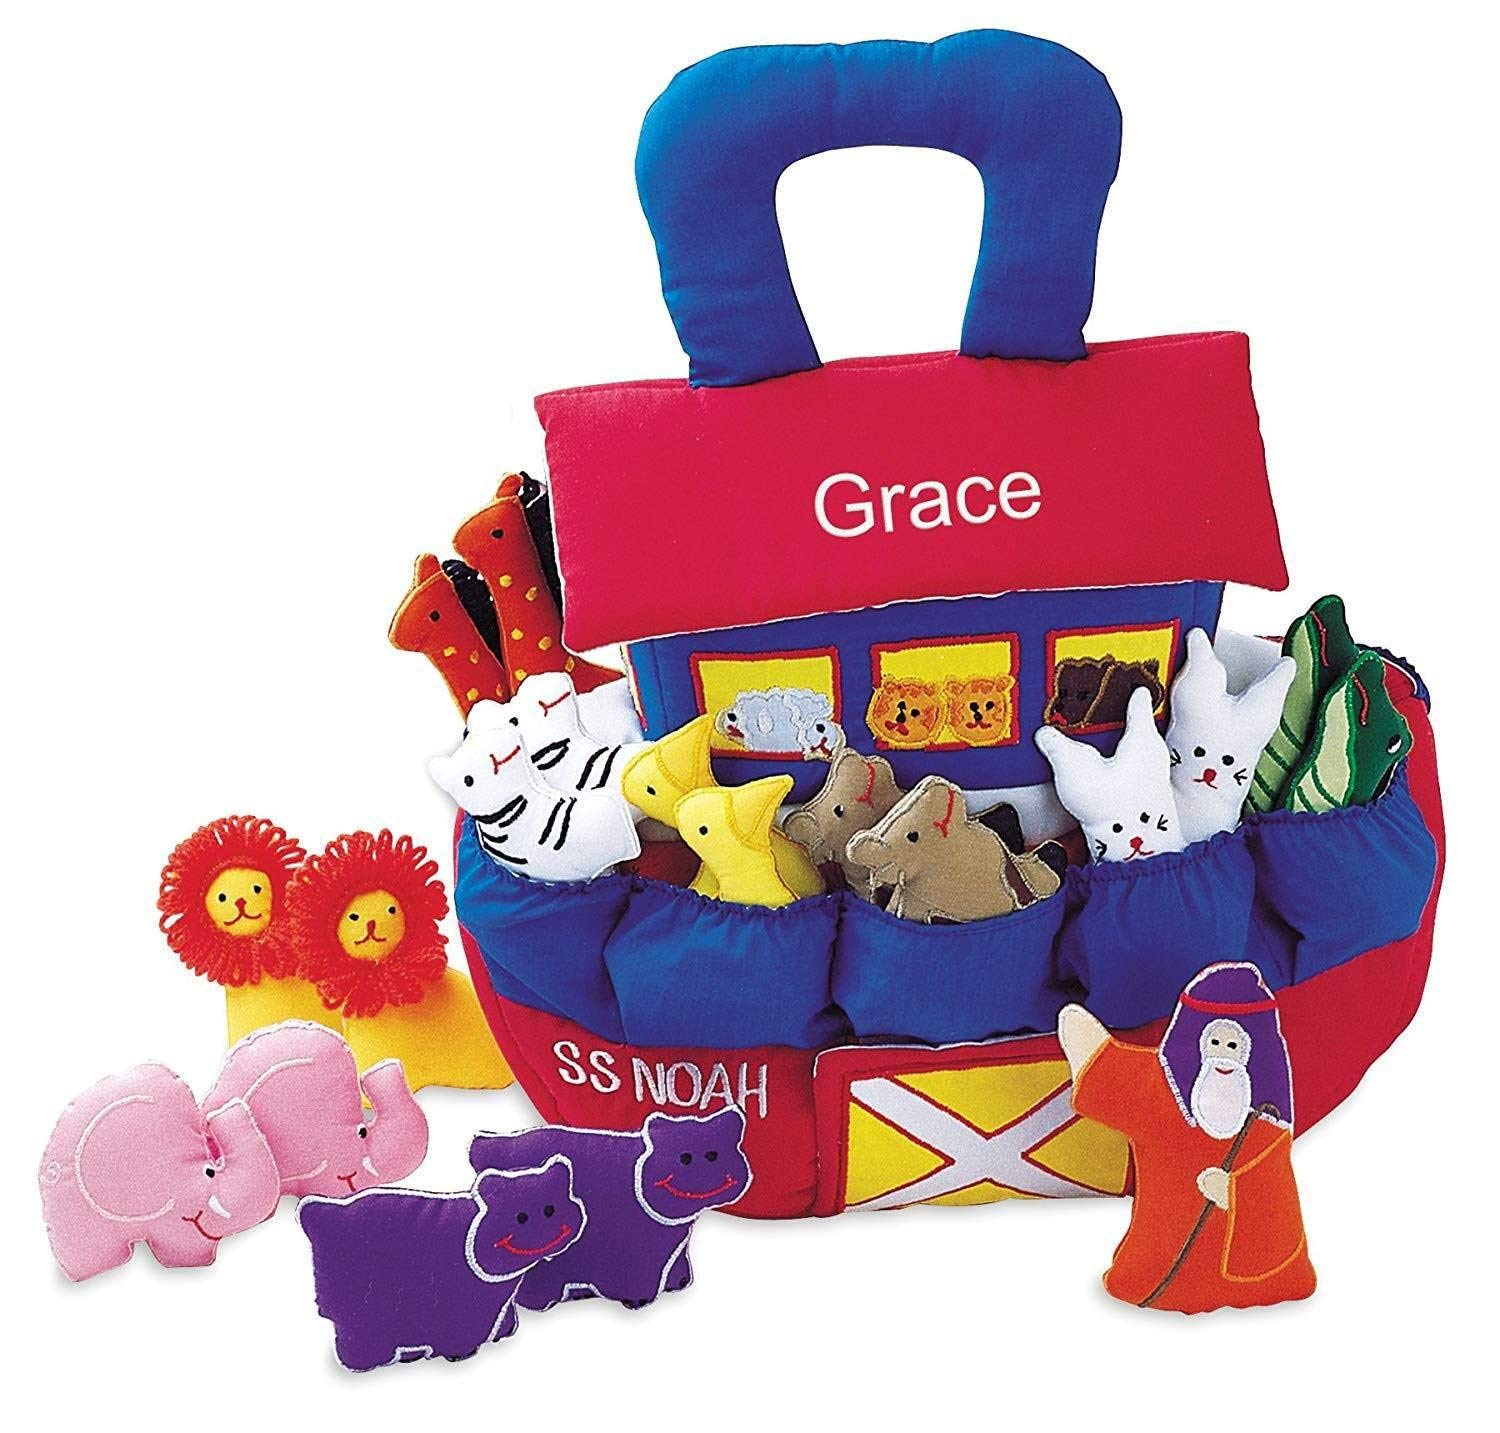 Pockets of Learning Personalized Noah's Ark Soft Play Set for Toddlers and Children, Fabric Activity, Cloth Pretend Bible Play Toy